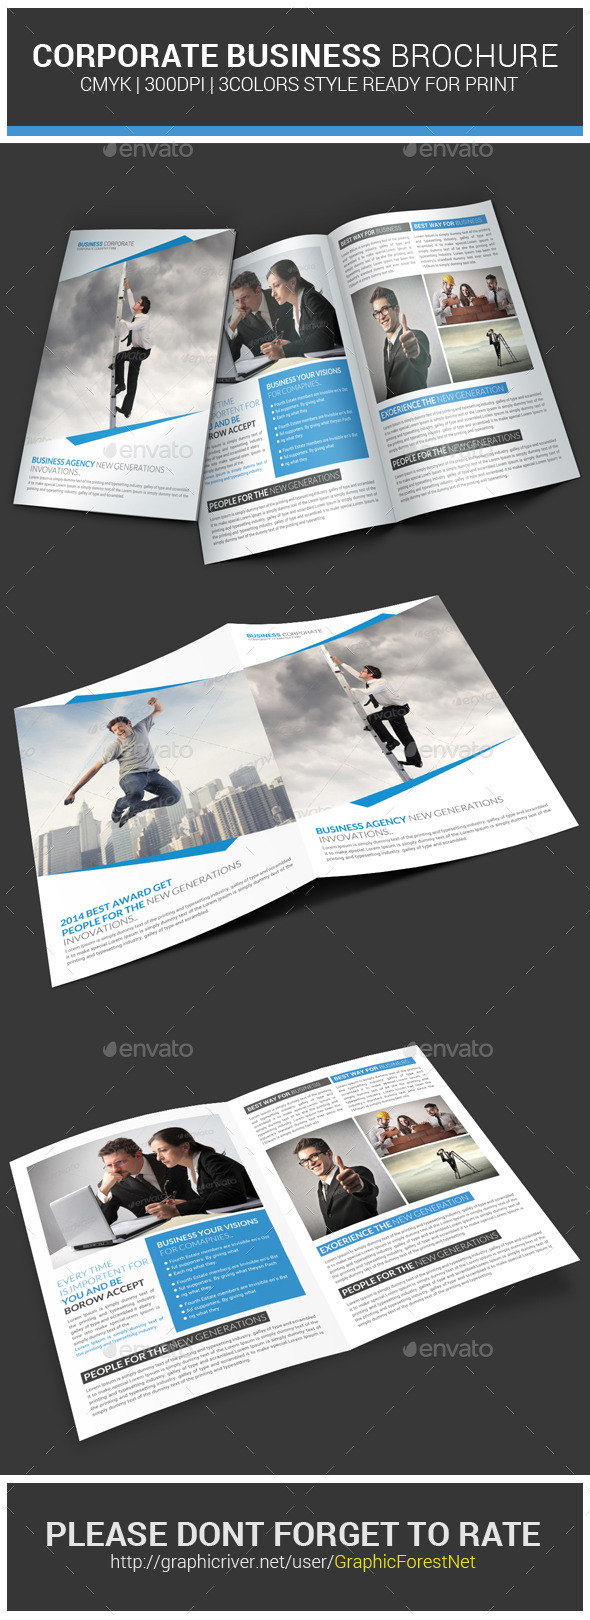 GraphicRiver Corporate Business Brochure Psd Template 8997679